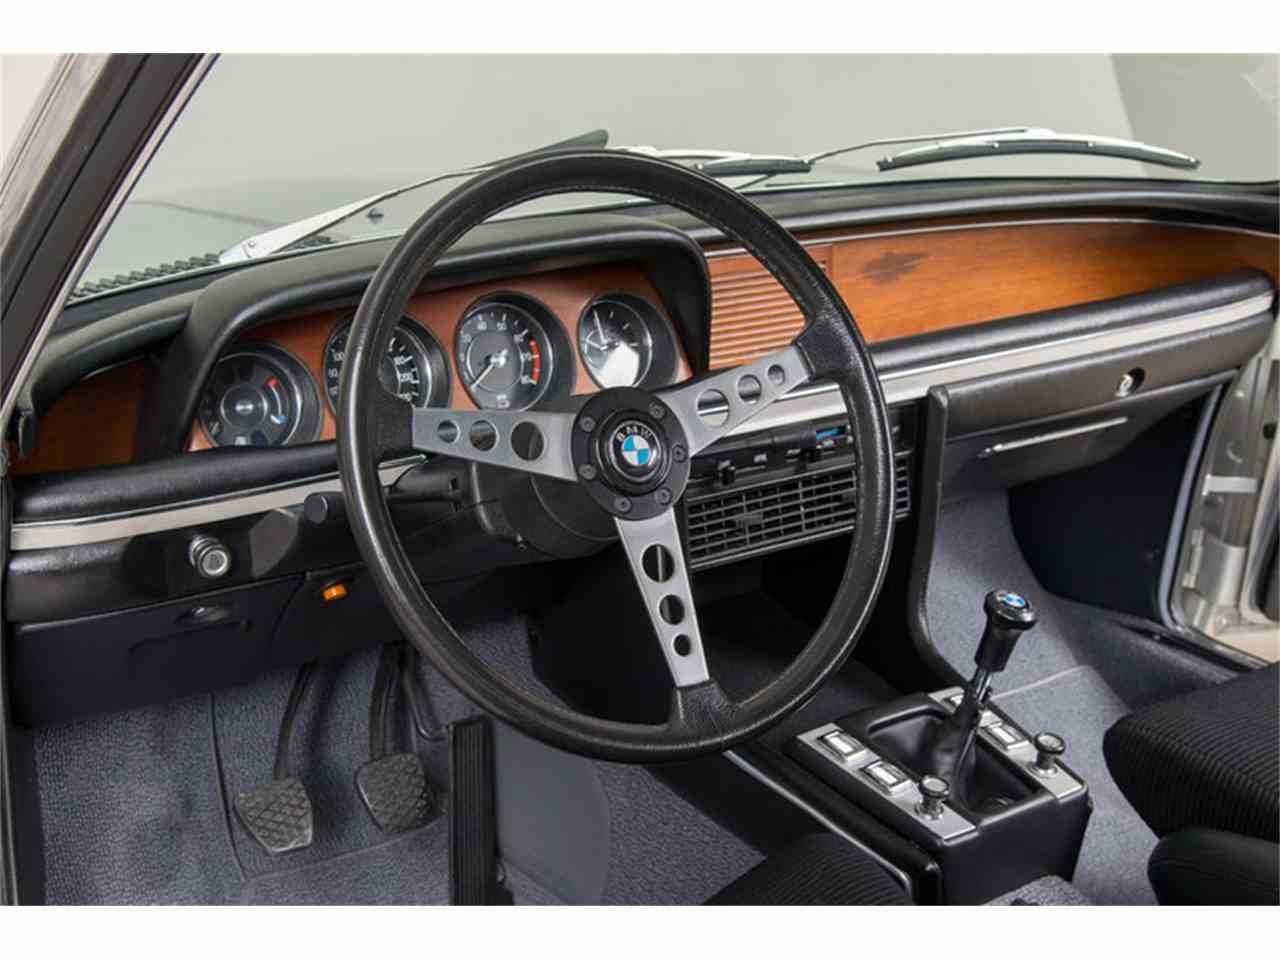 BMW 5 Series » Bmw 3.0 Csl Interior - BMW Car Pictures, All Types ...